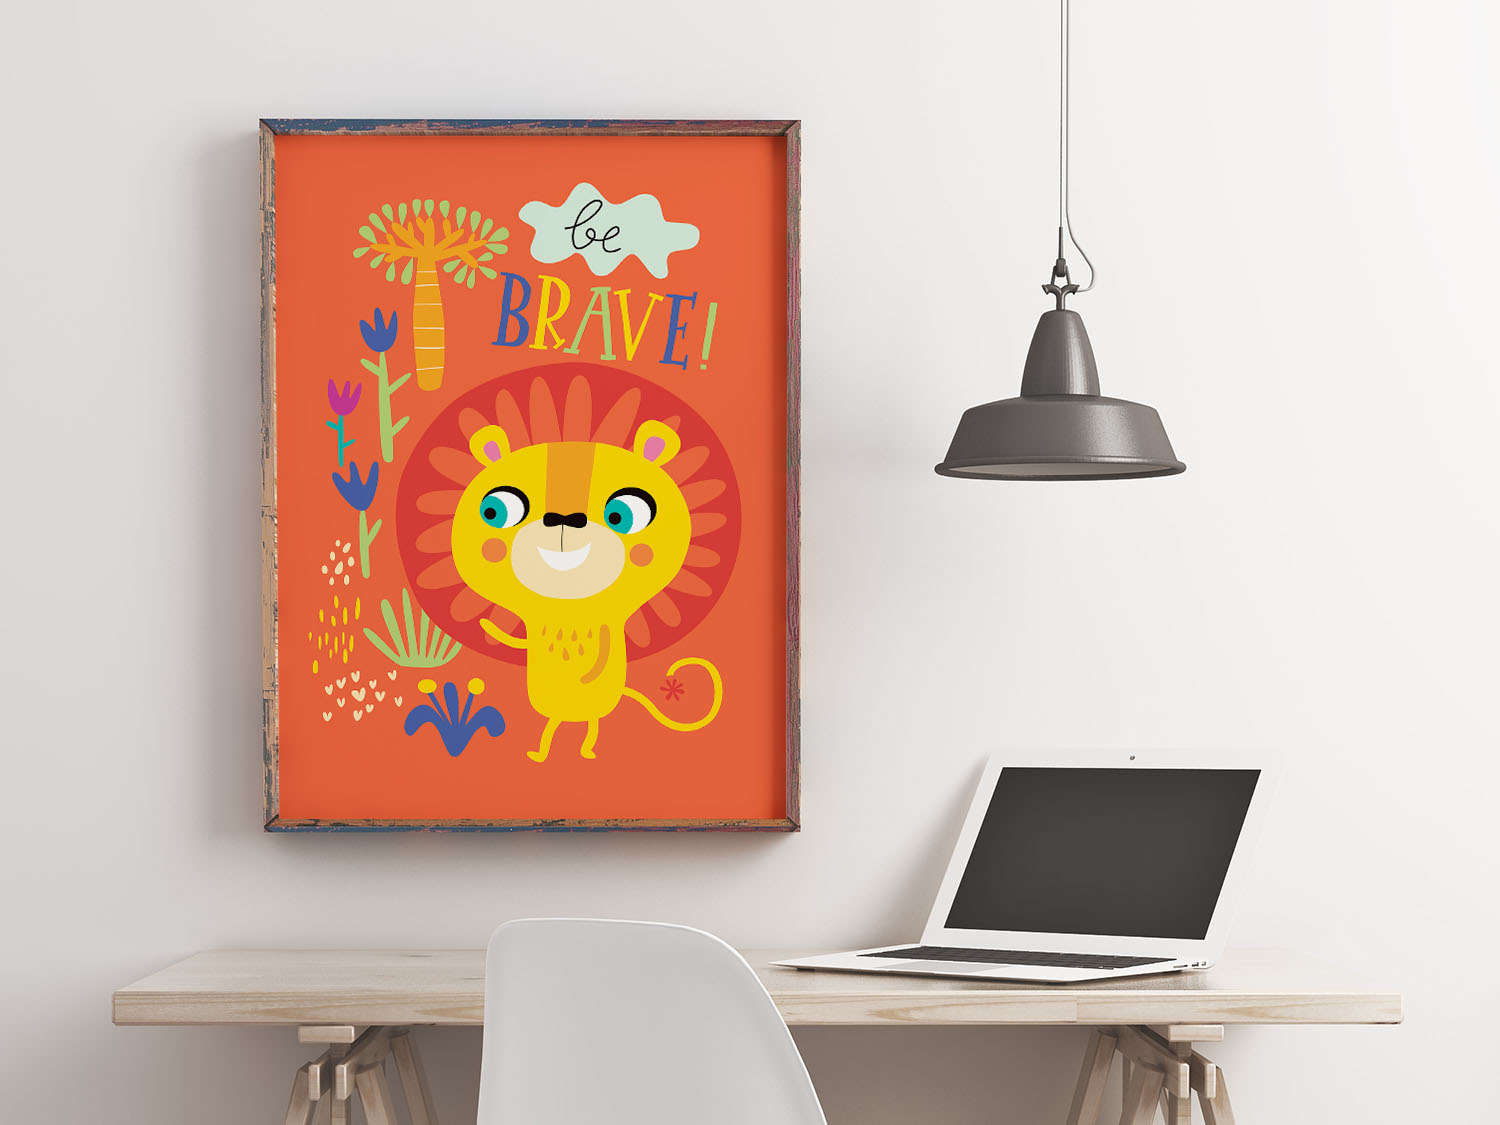 10 Be Brave Nursery Wall Art for Baby Room Decor